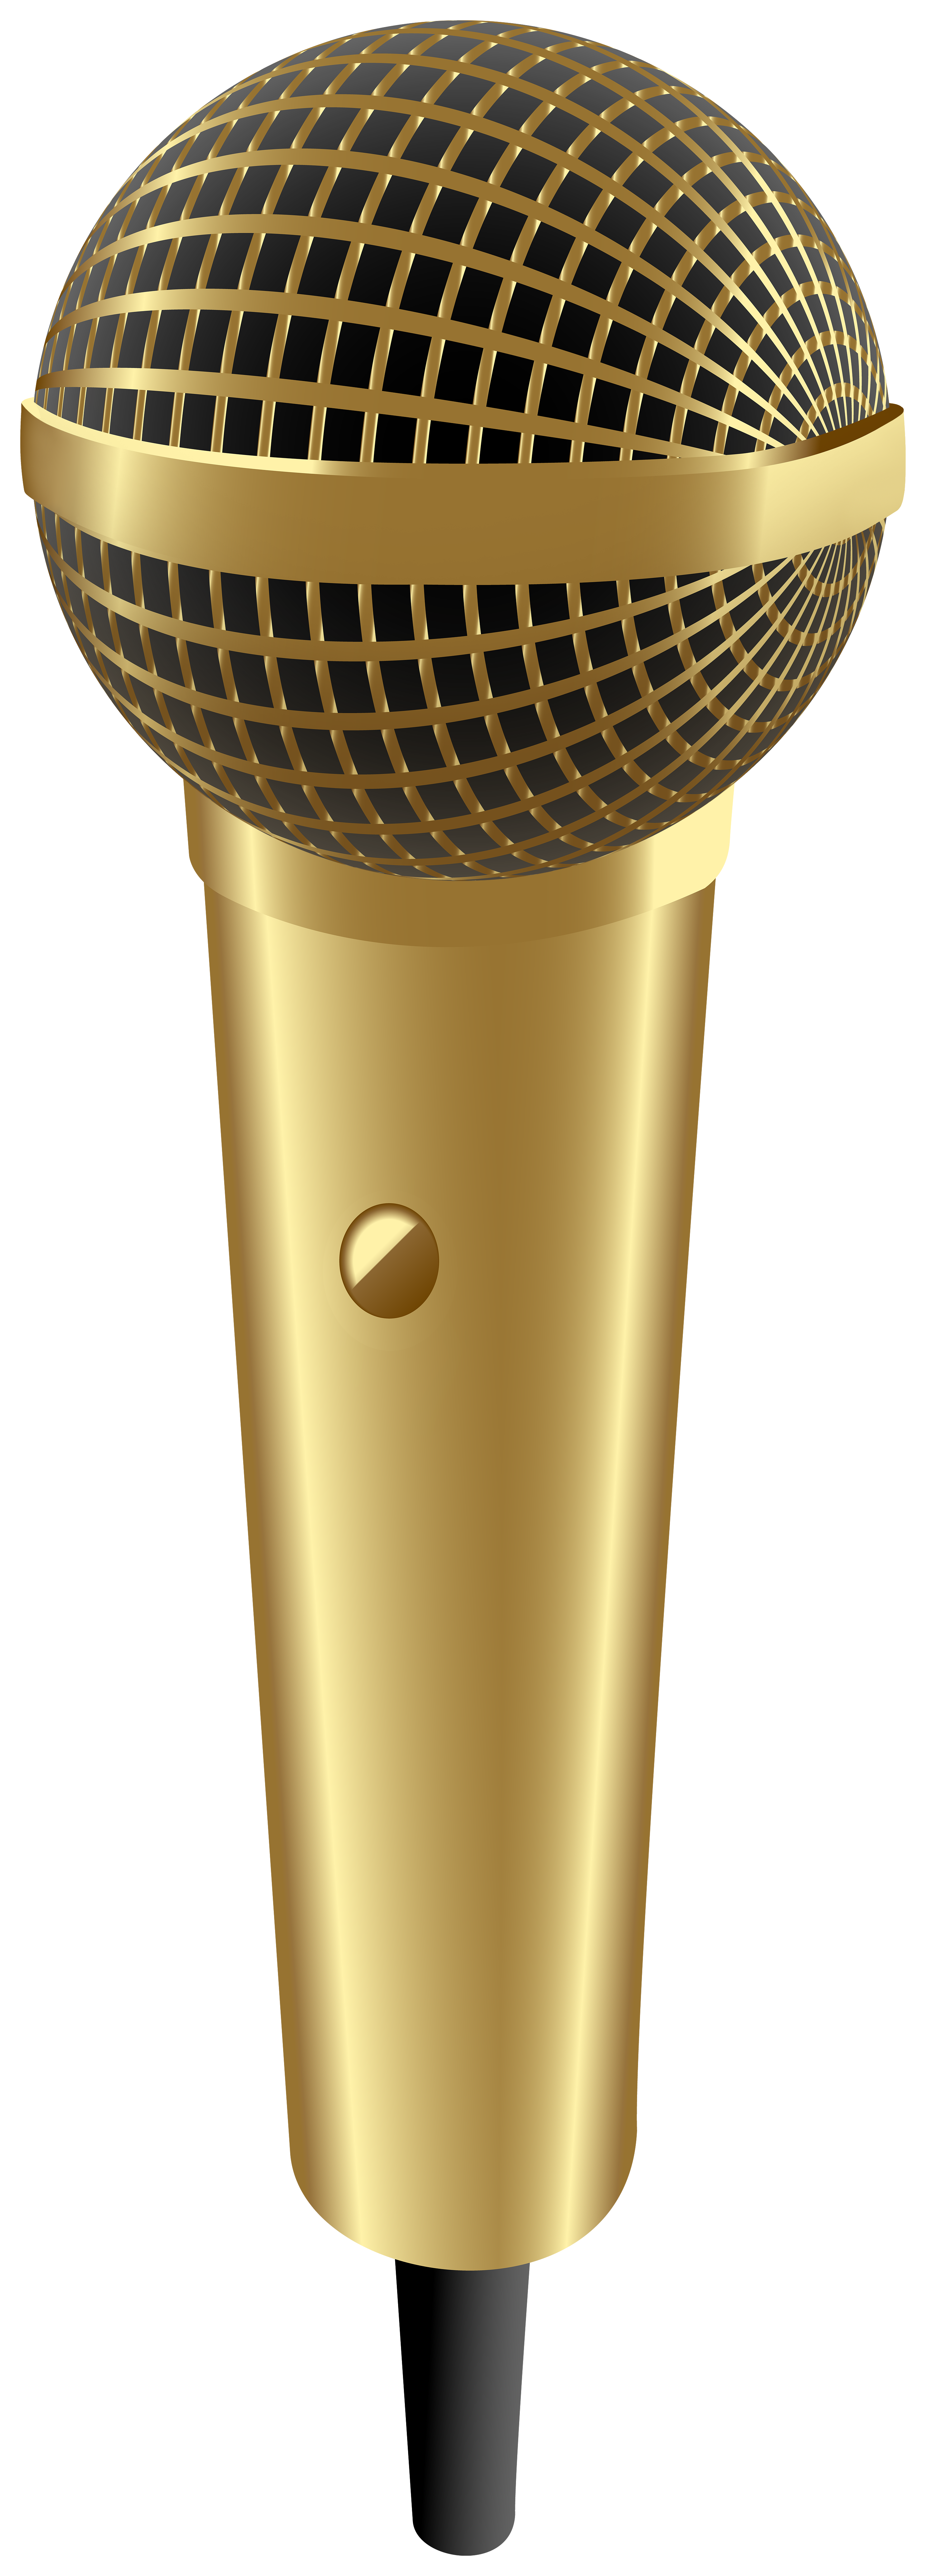 Microphone clipart gold. Transparent image gallery yopriceville